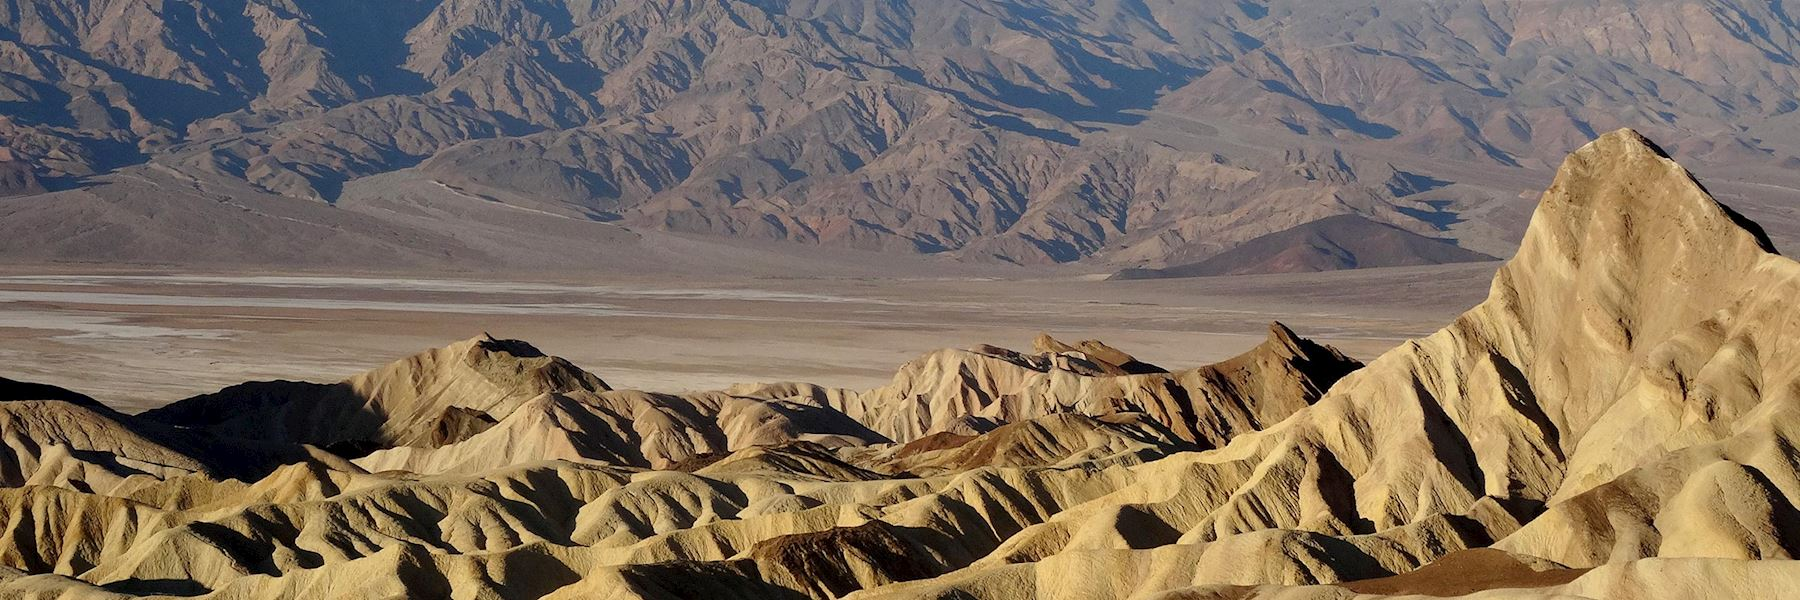 Visit Death Valley National Park, California